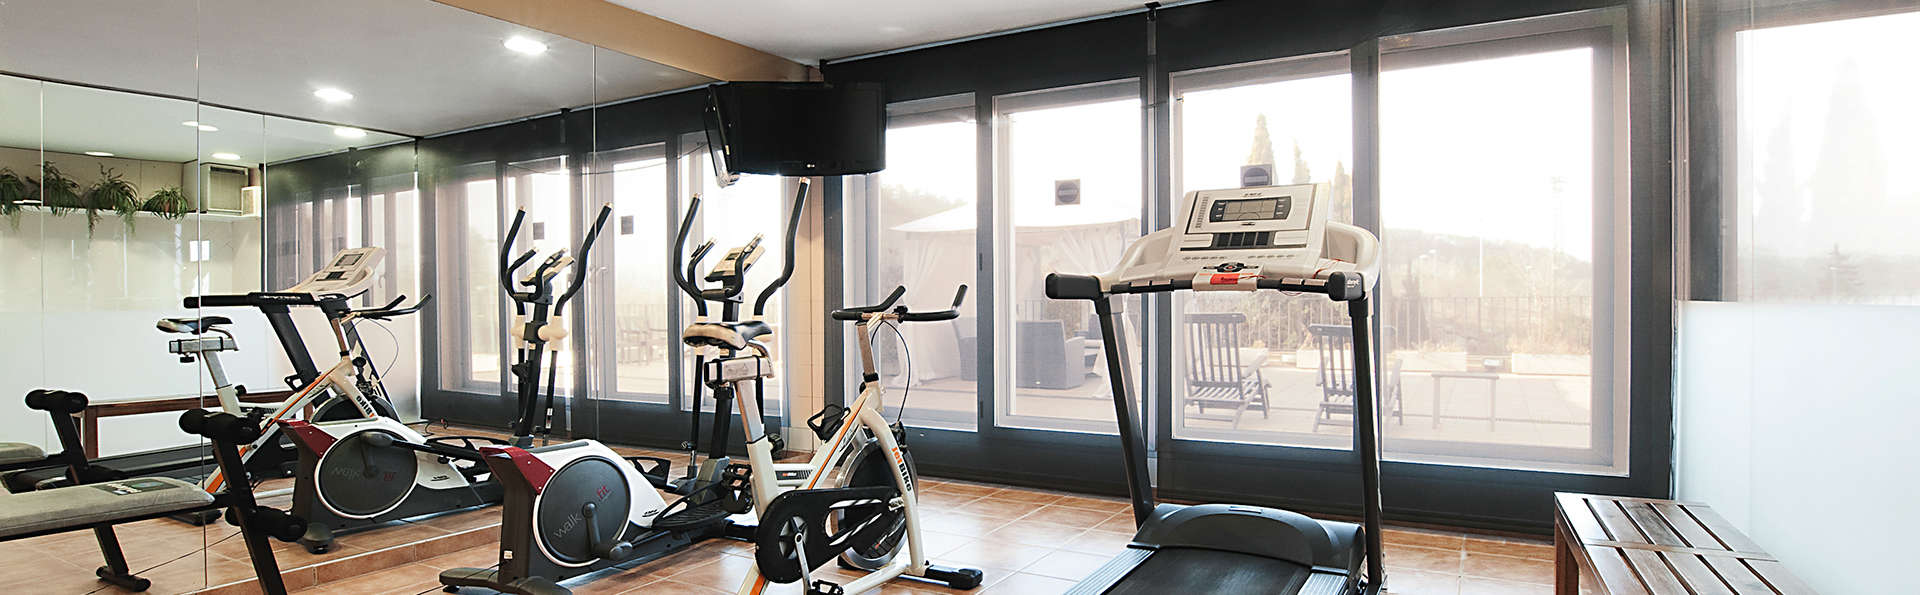 Hotel Costabella - EDIT_gym.jpg